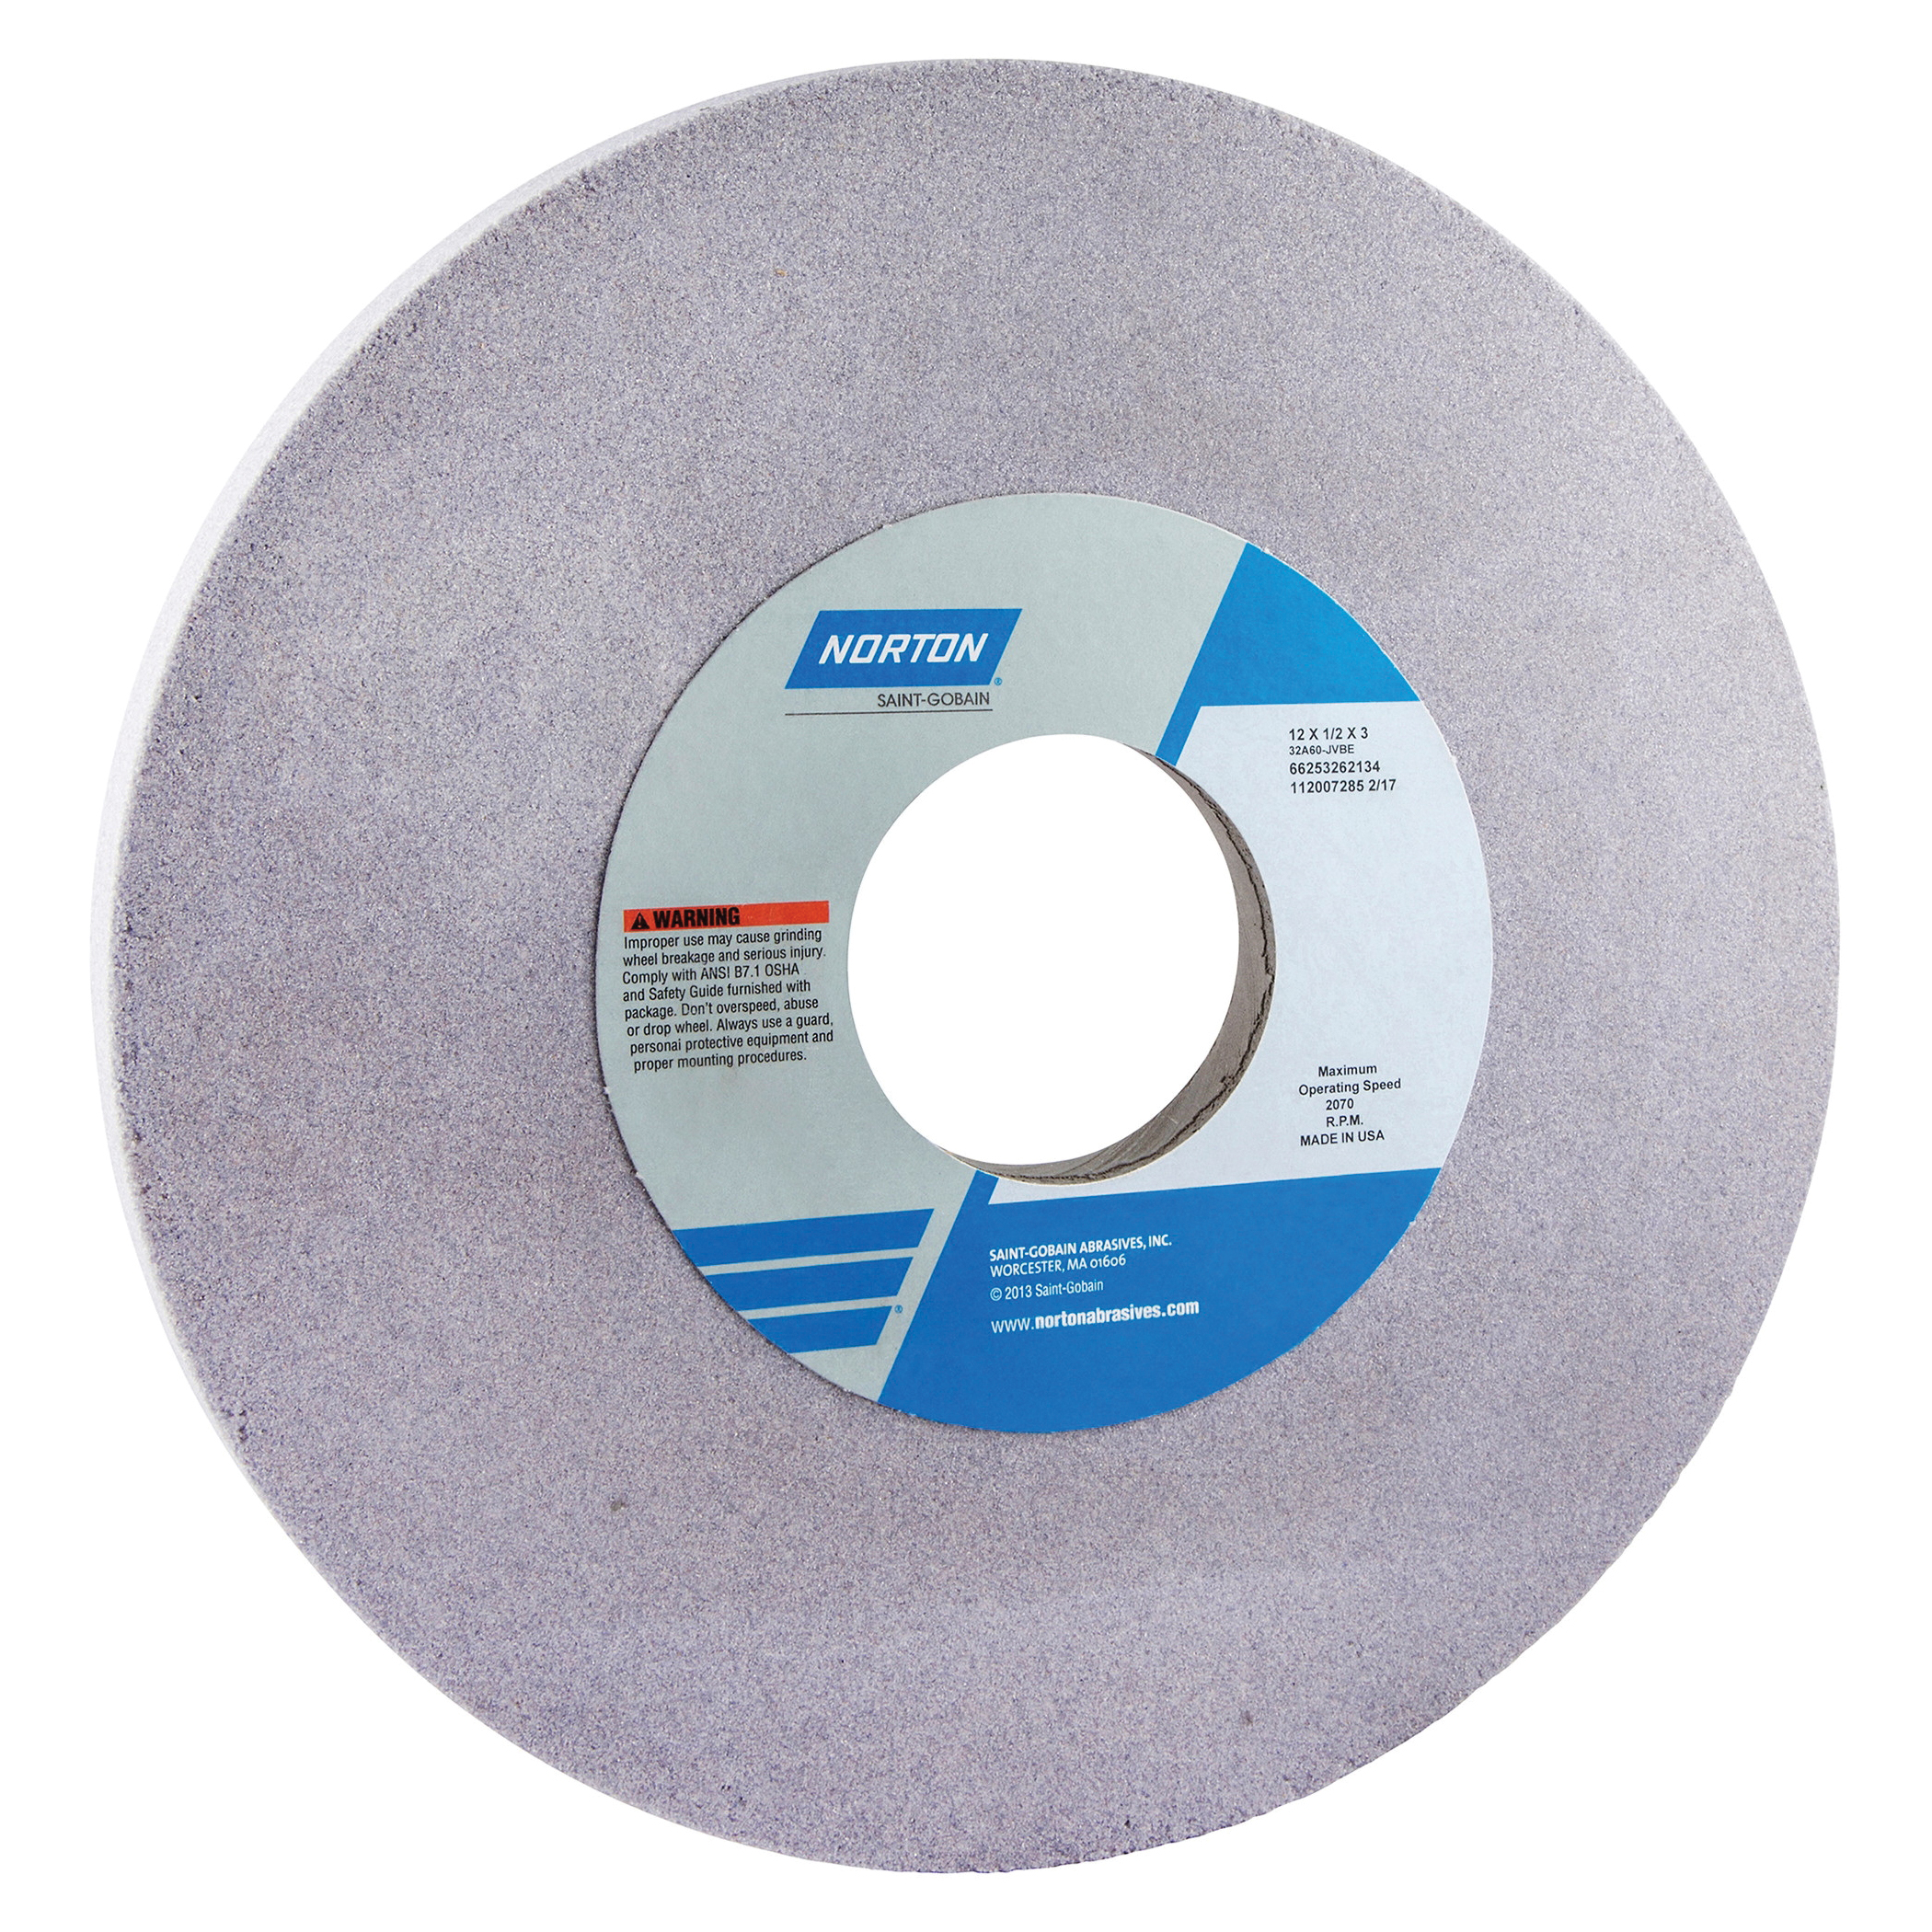 Norton® 66253262110 32A Straight Toolroom Wheel, 12 in Dia x 1/2 in THK, 3 in Center Hole, 80 Grit, Aluminum Oxide Abrasive